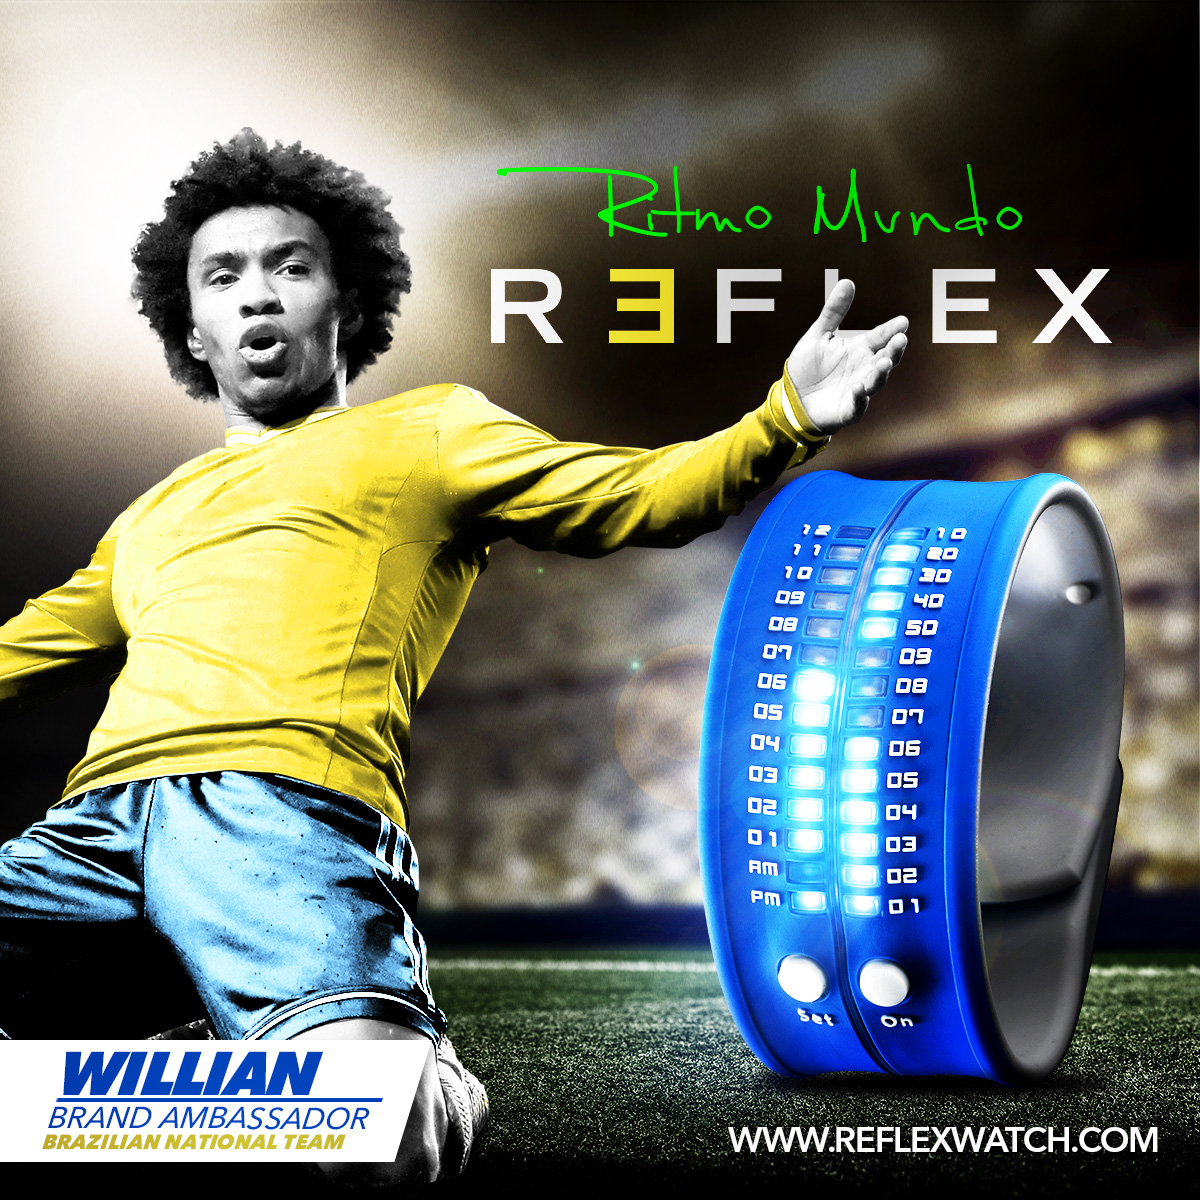 willian_reflex_blue_1